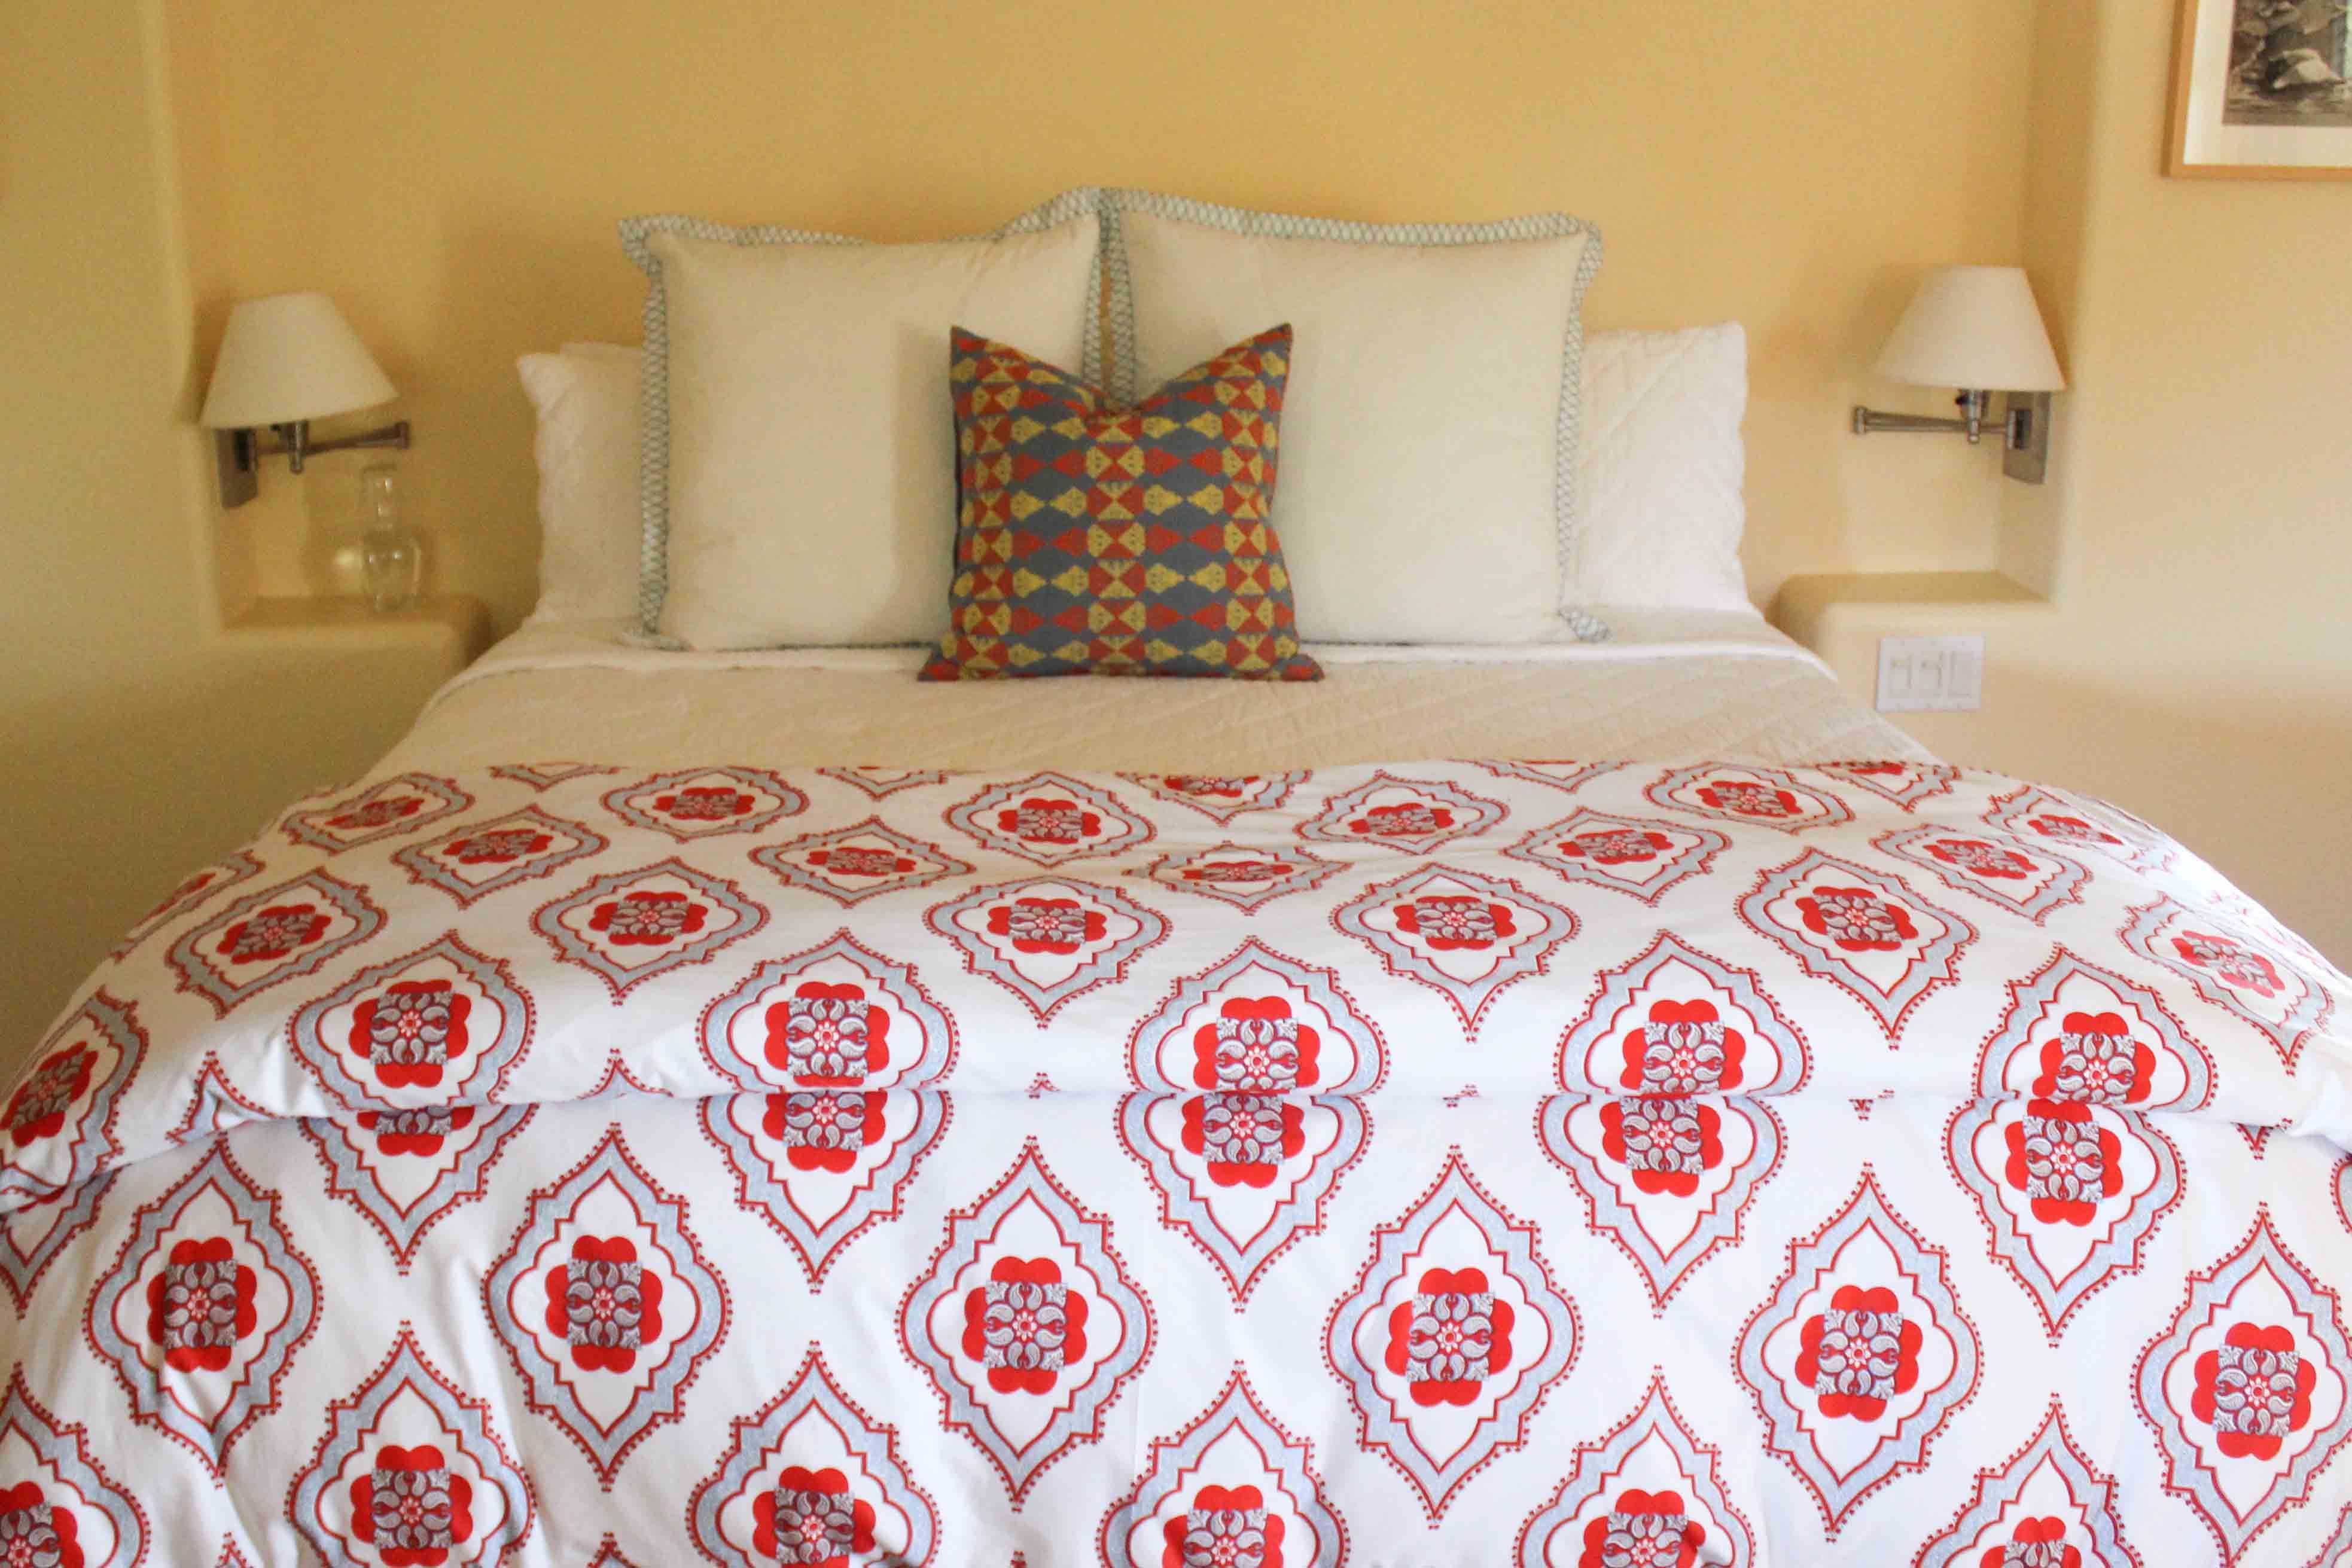 bed by enjoyable robshaw with for john charming bedroom textiles bedding design jr